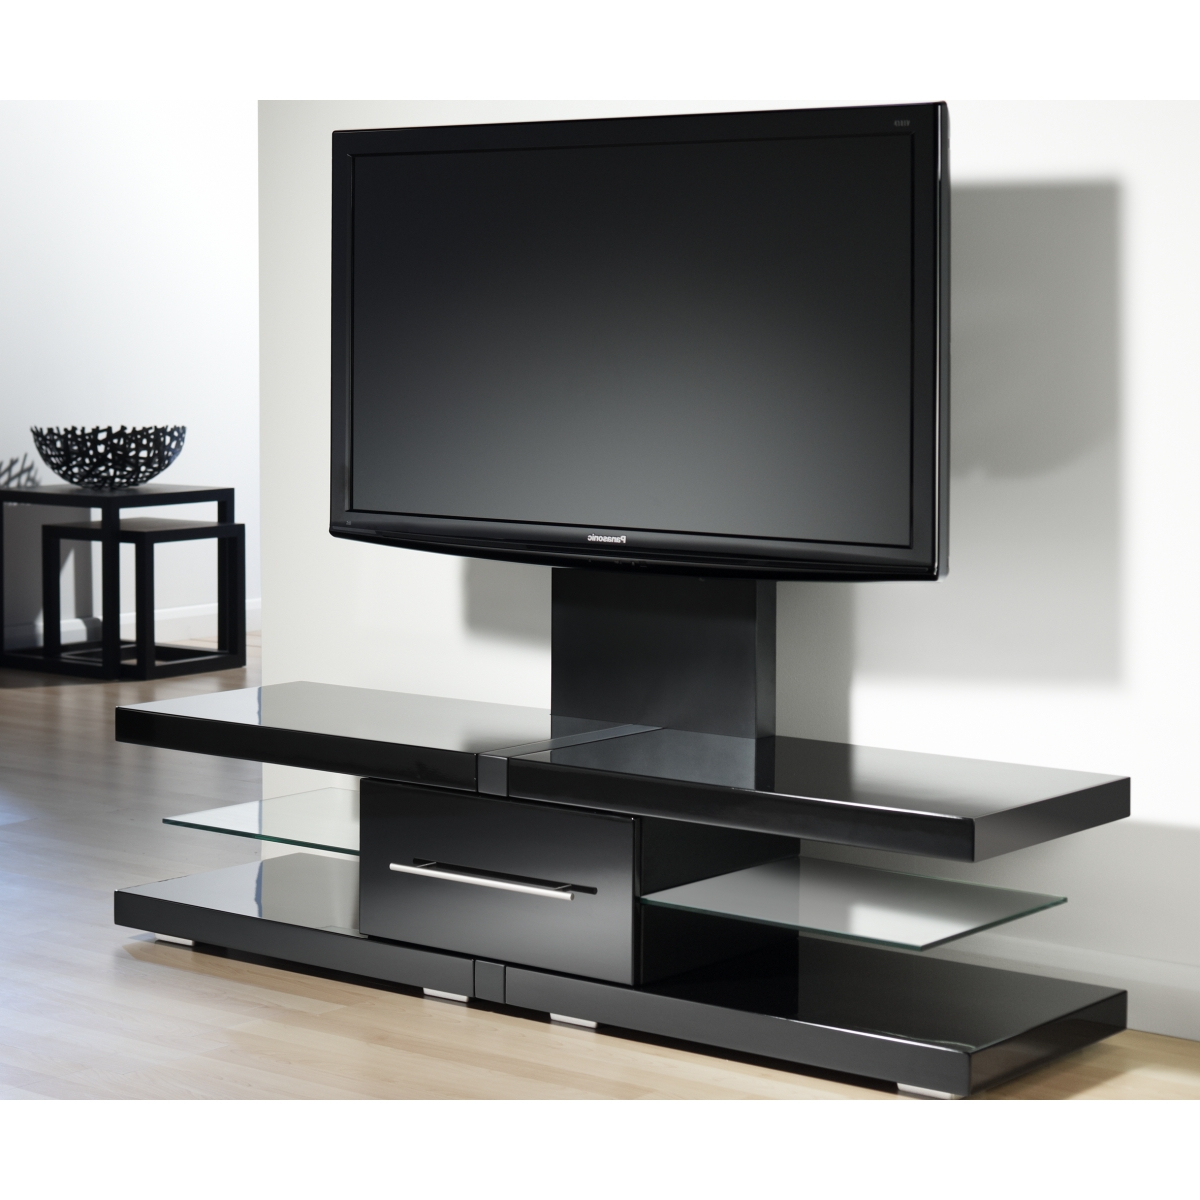 Tv Stands For Flat Screens On The Wall — Home Decorcoppercreekgroup Inside Newest Modern Tv Stands For Flat Screens (View 17 of 20)